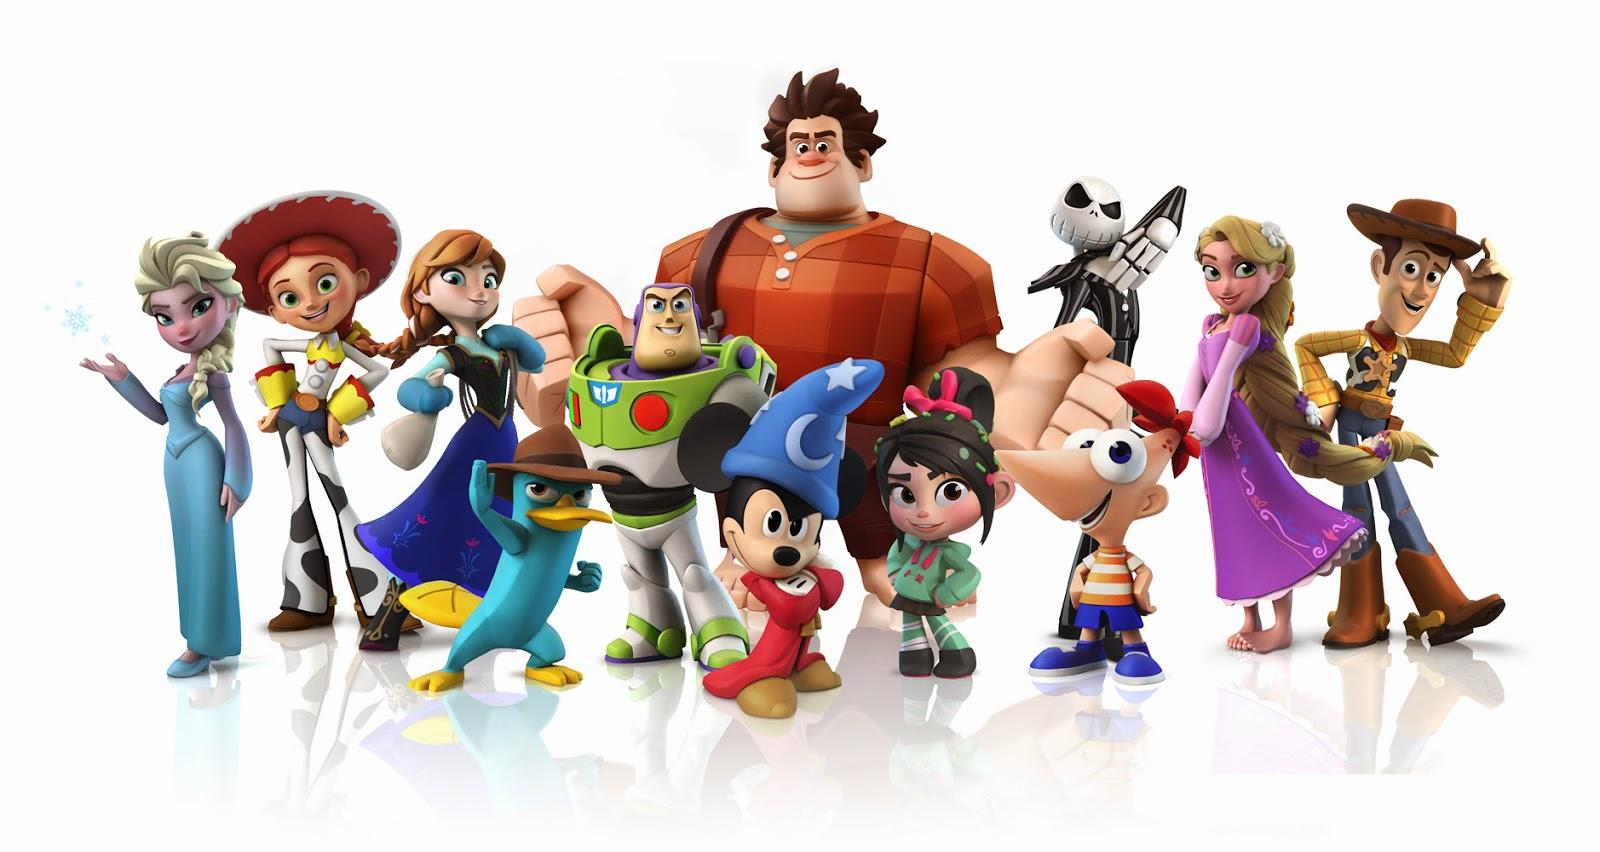 C:\Documents and Settings\jeslwill\Local Settings\Temporary Internet Files\Content.IE5\0ZT3OLC1\Disney-Infinity-Series-2-Banner-Presale[1].jpg